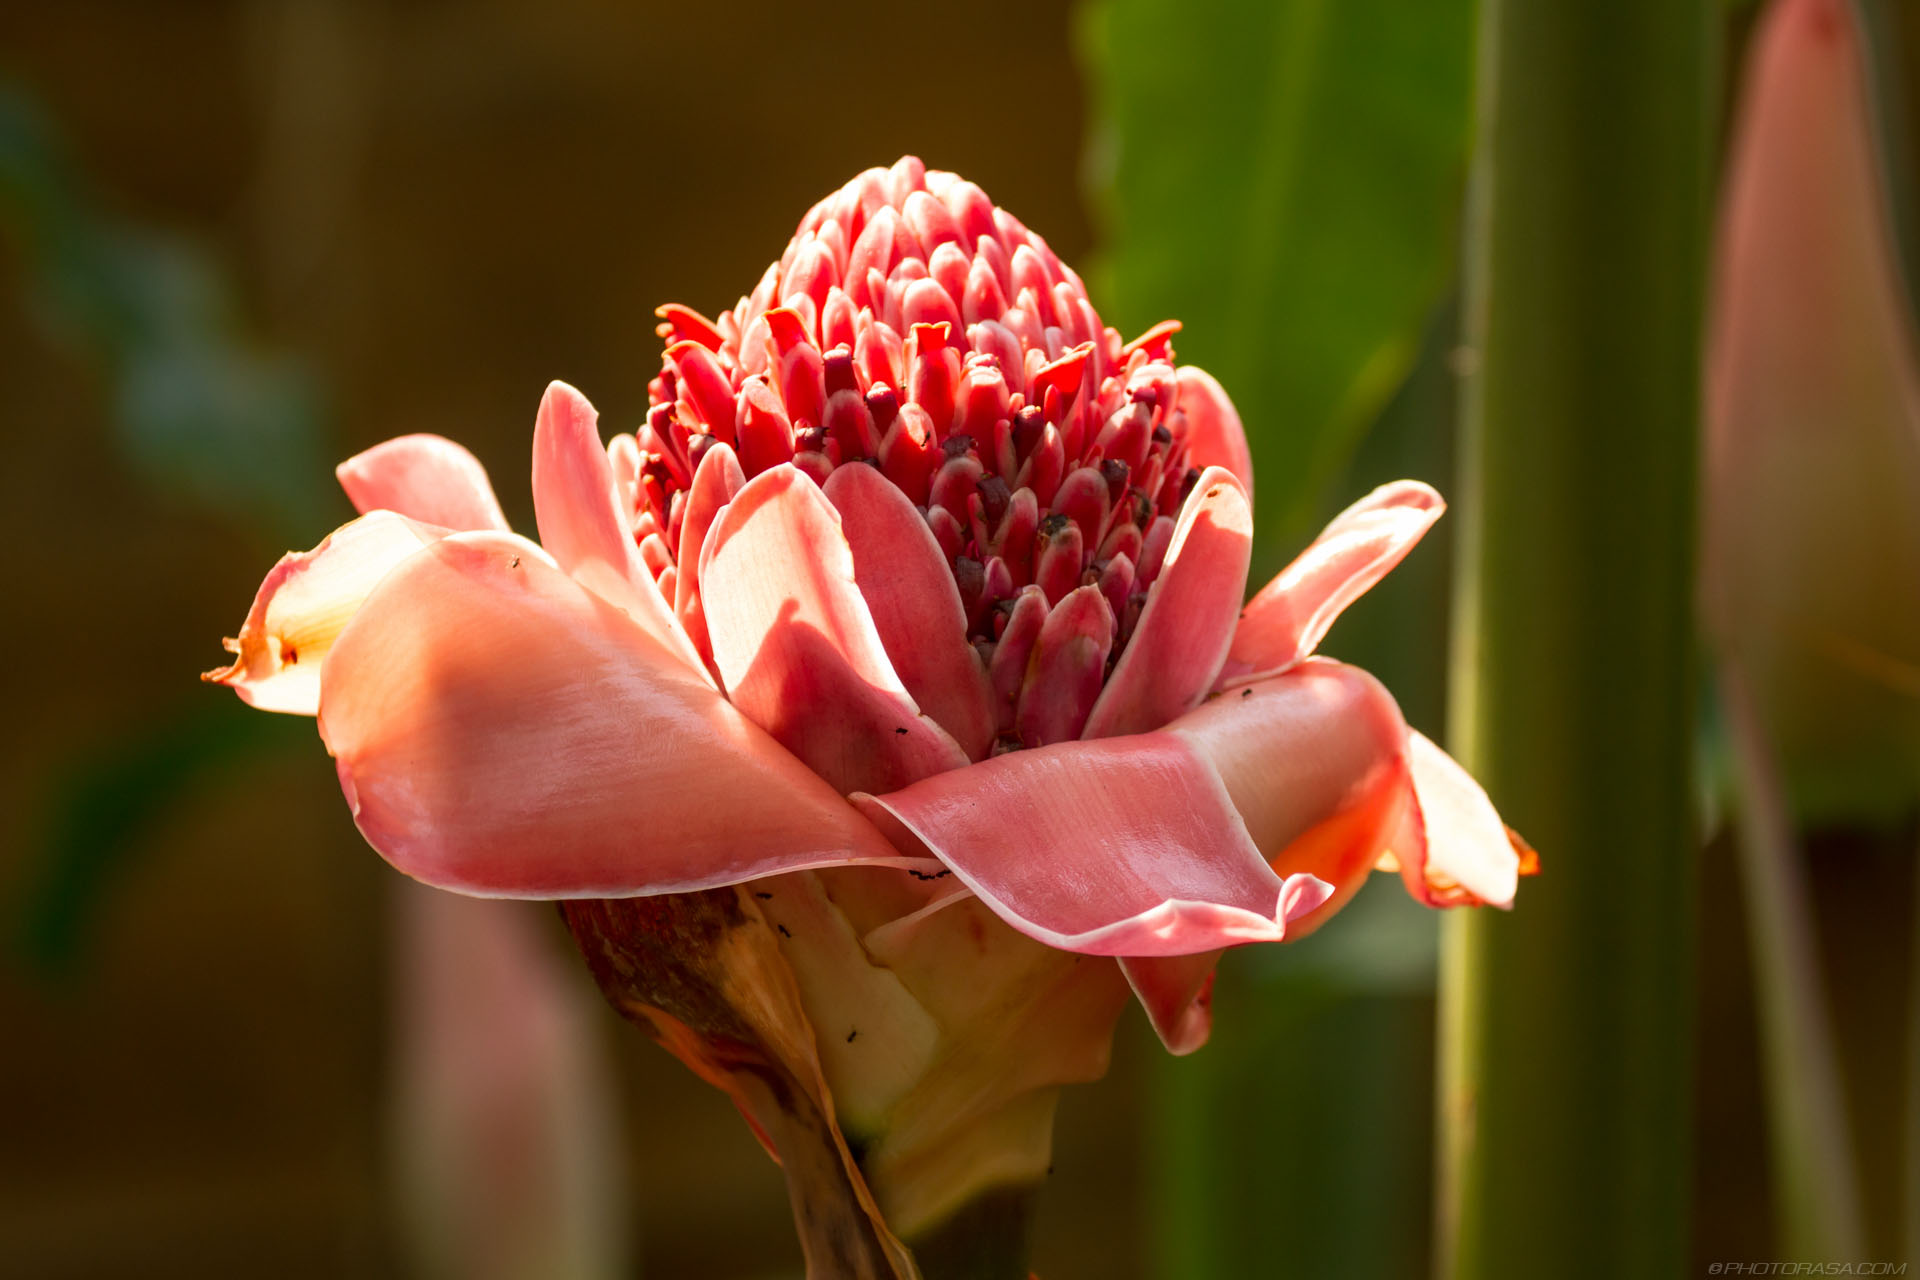 https://photorasa.com/strange-exotic-flowers/large-pink-succulent-flower/